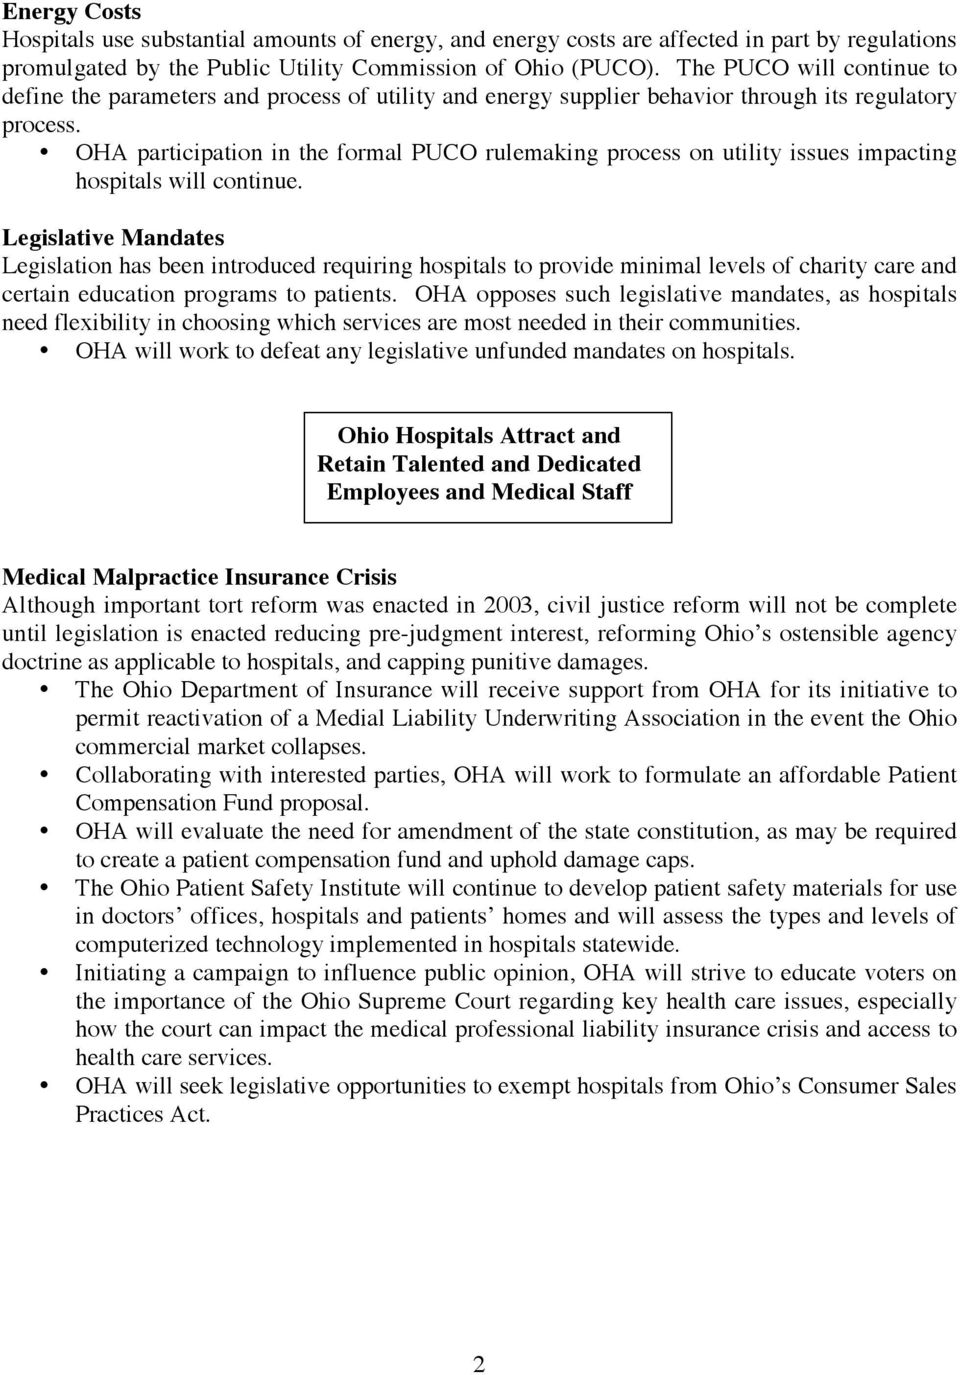 OHA participation in the formal PUCO rulemaking process on utility issues impacting hospitals will continue.